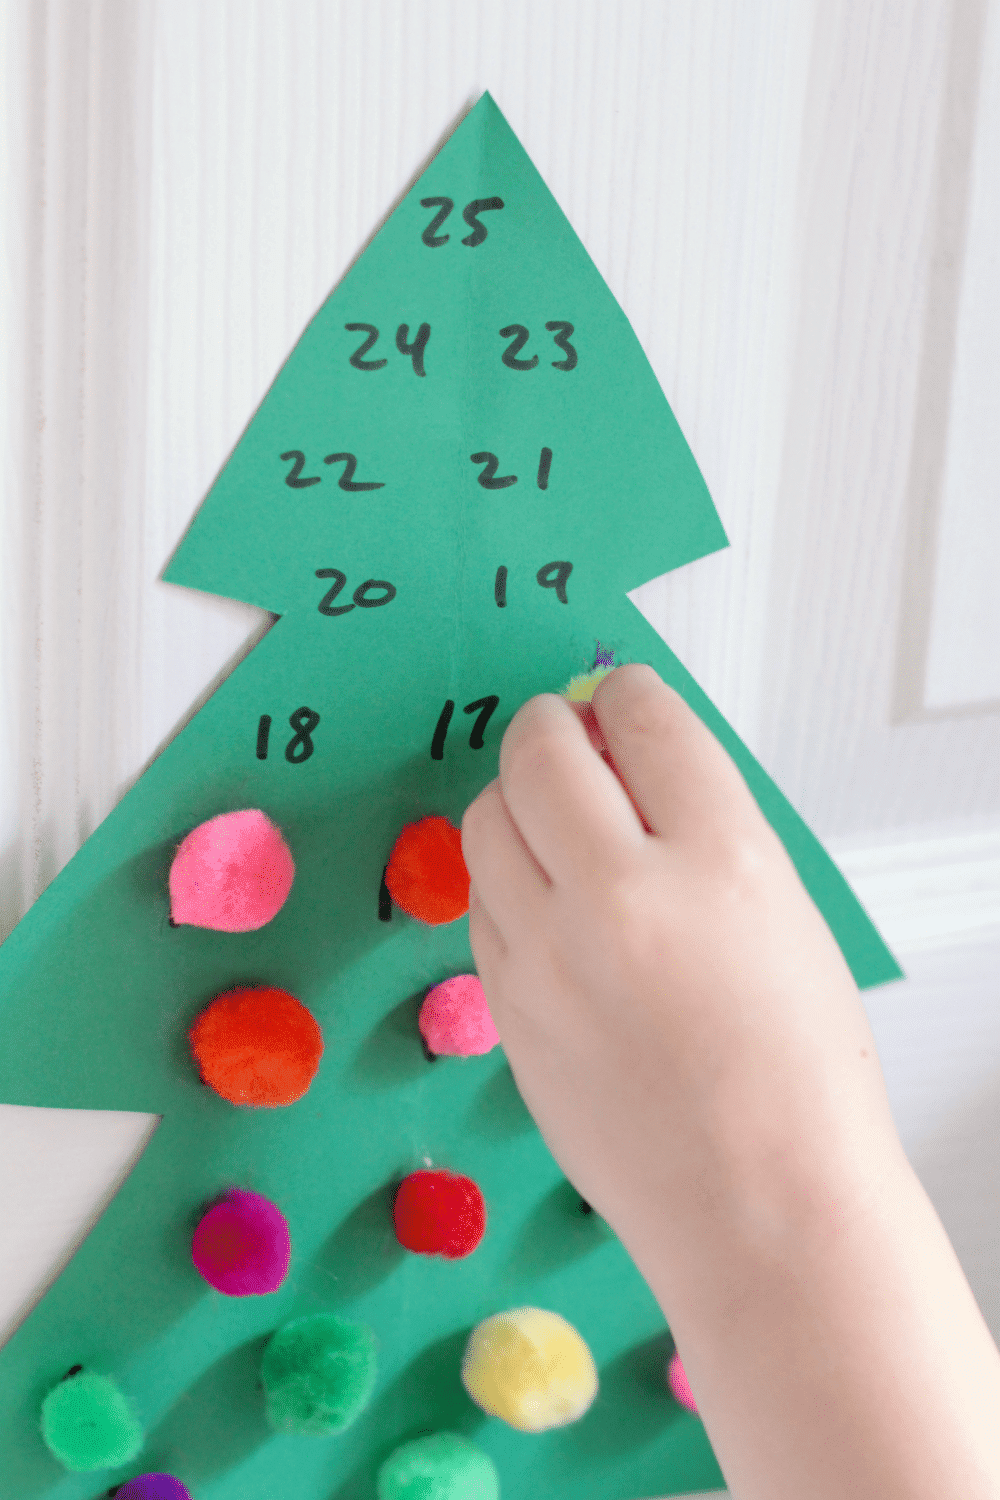 Looking for an advent calendar for kids? This pom pom Christmas tree advent calendar is super easy and makes a great Christmas craft for kids!